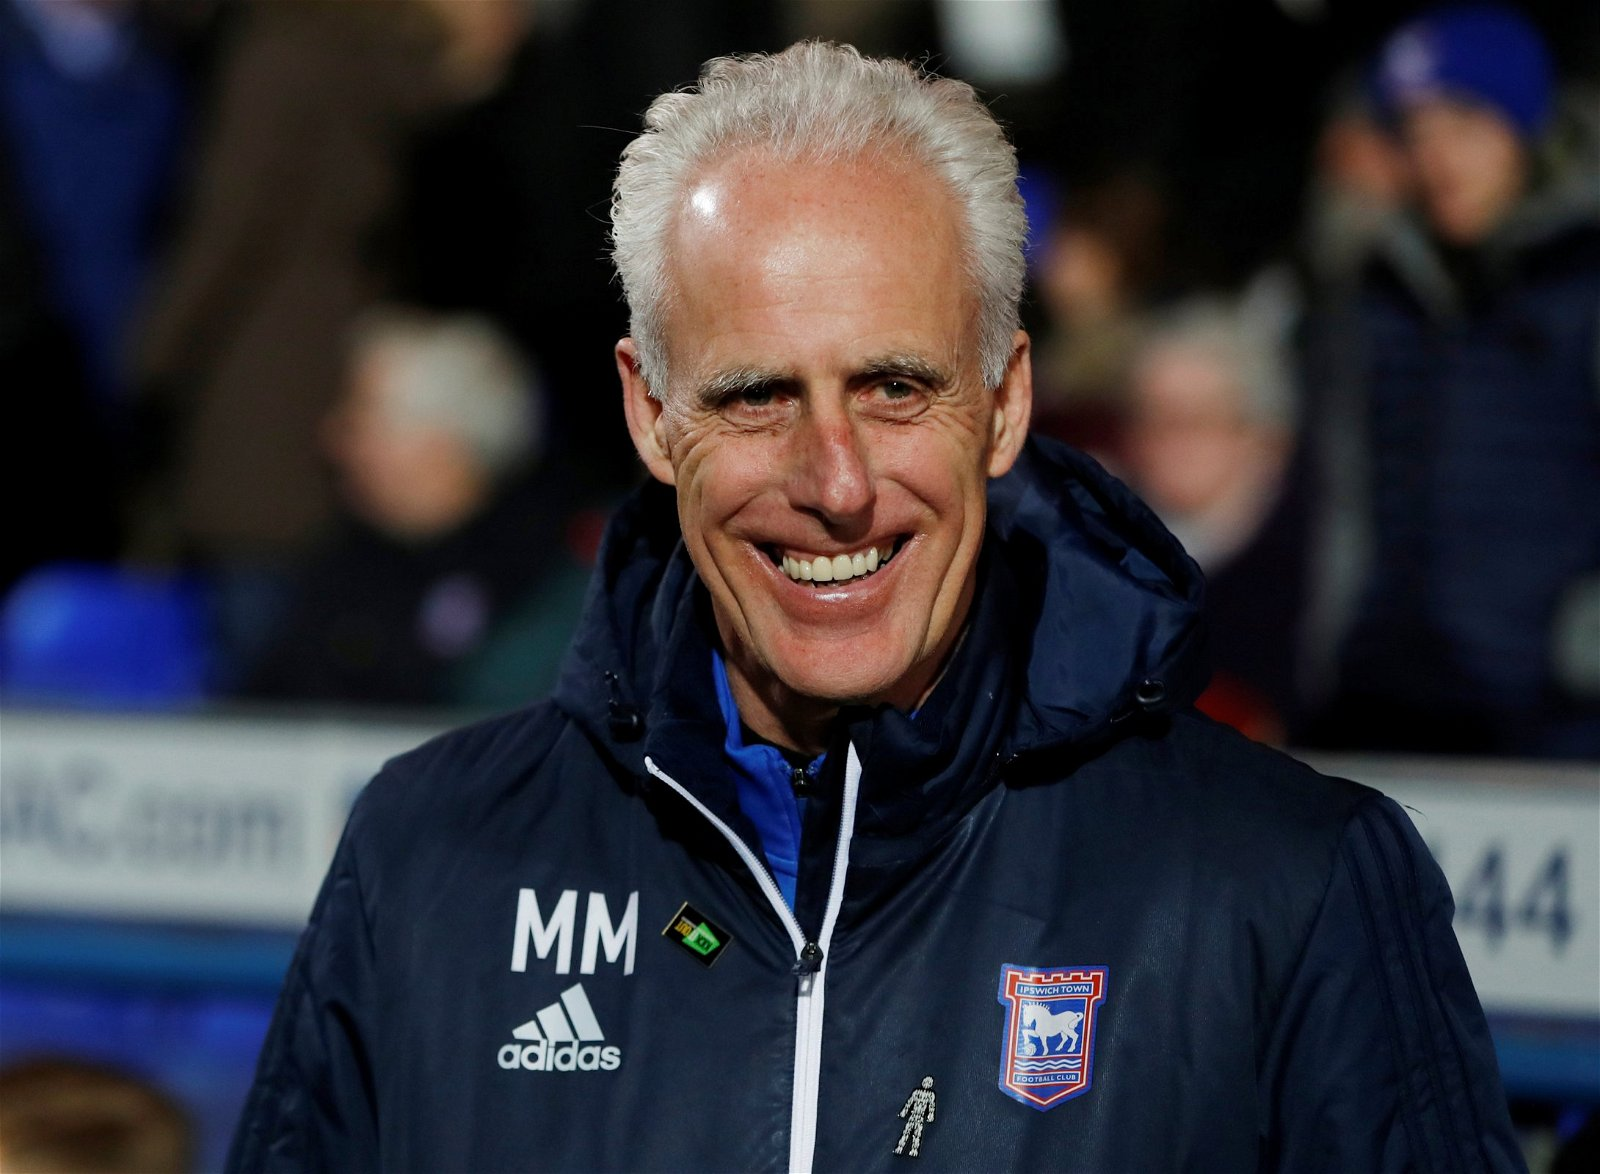 Former Ipswich Town manager Mick McCarthy